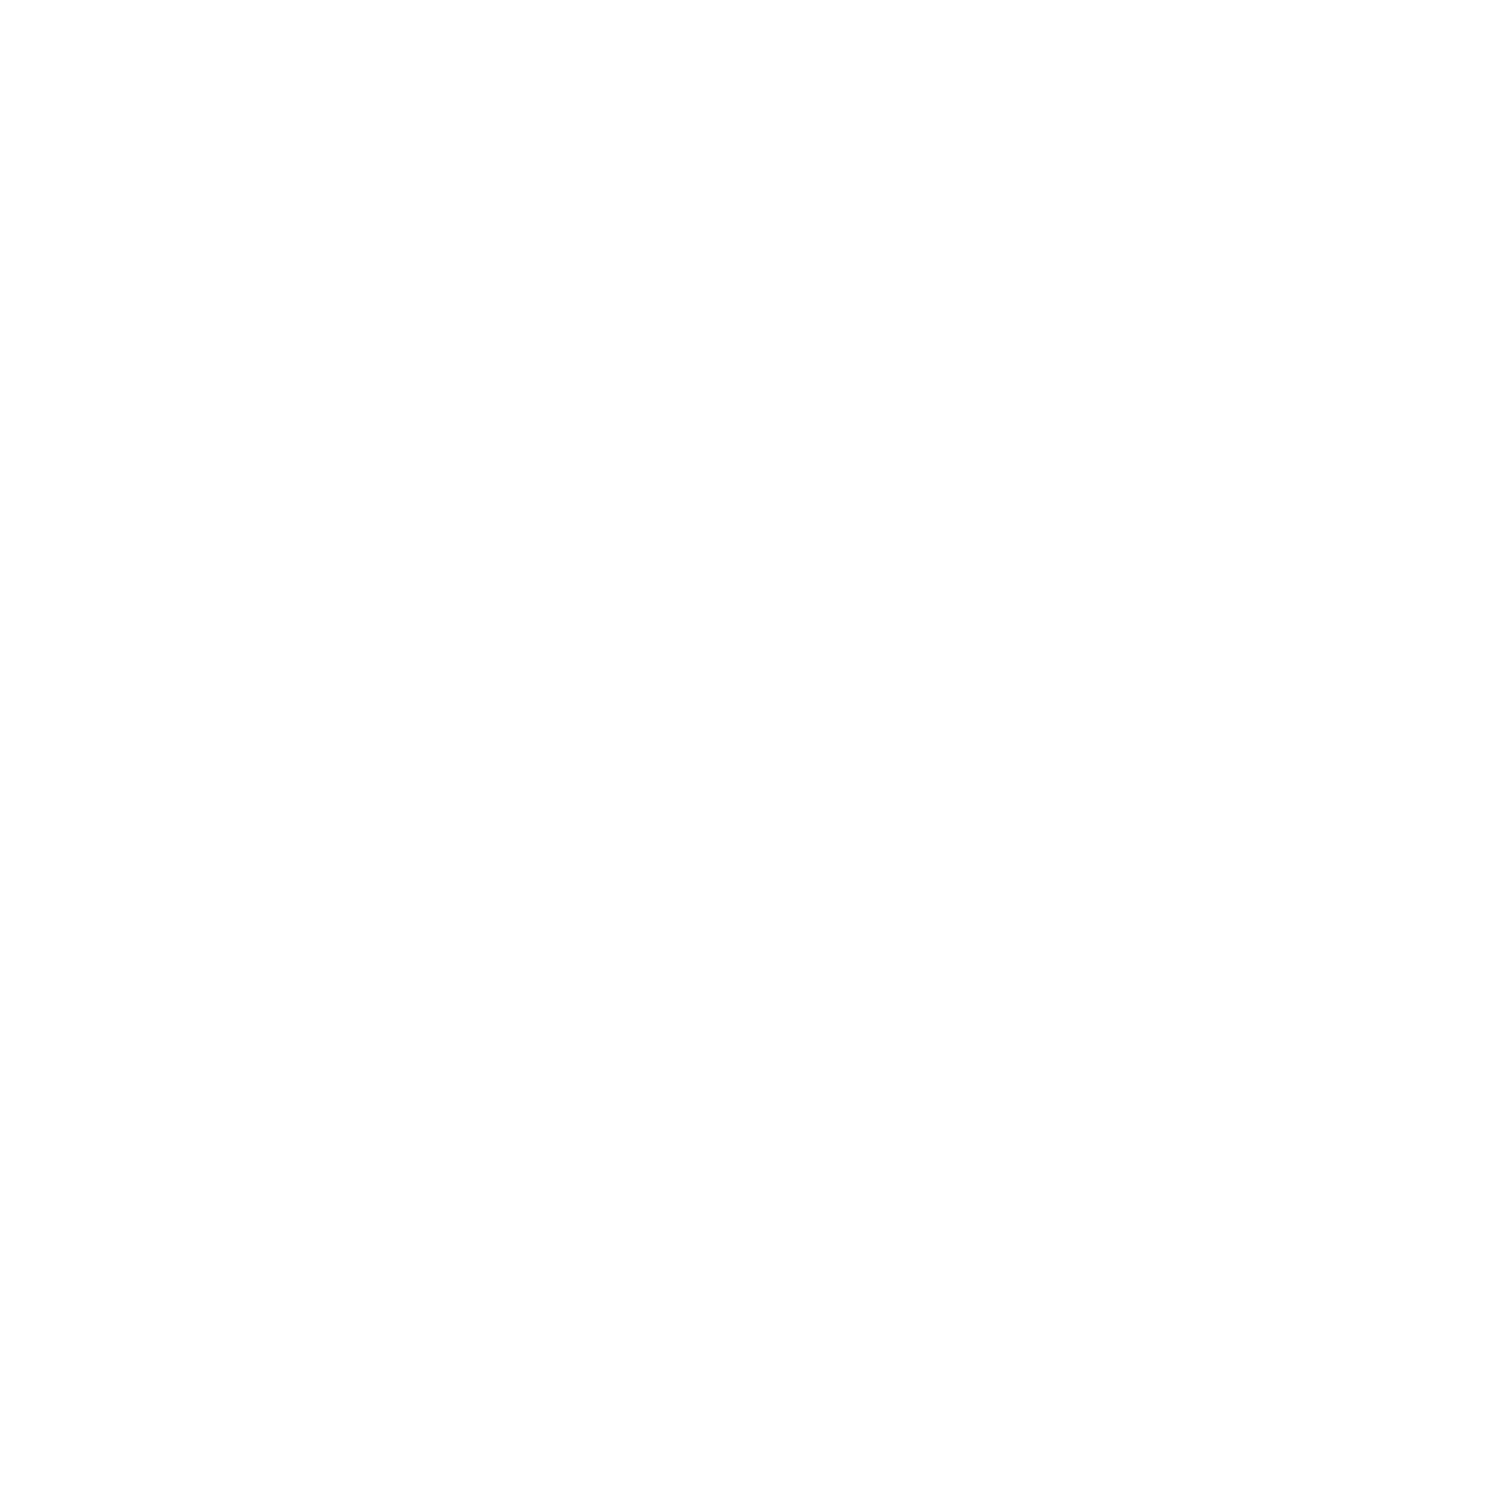 UK Esports Awards